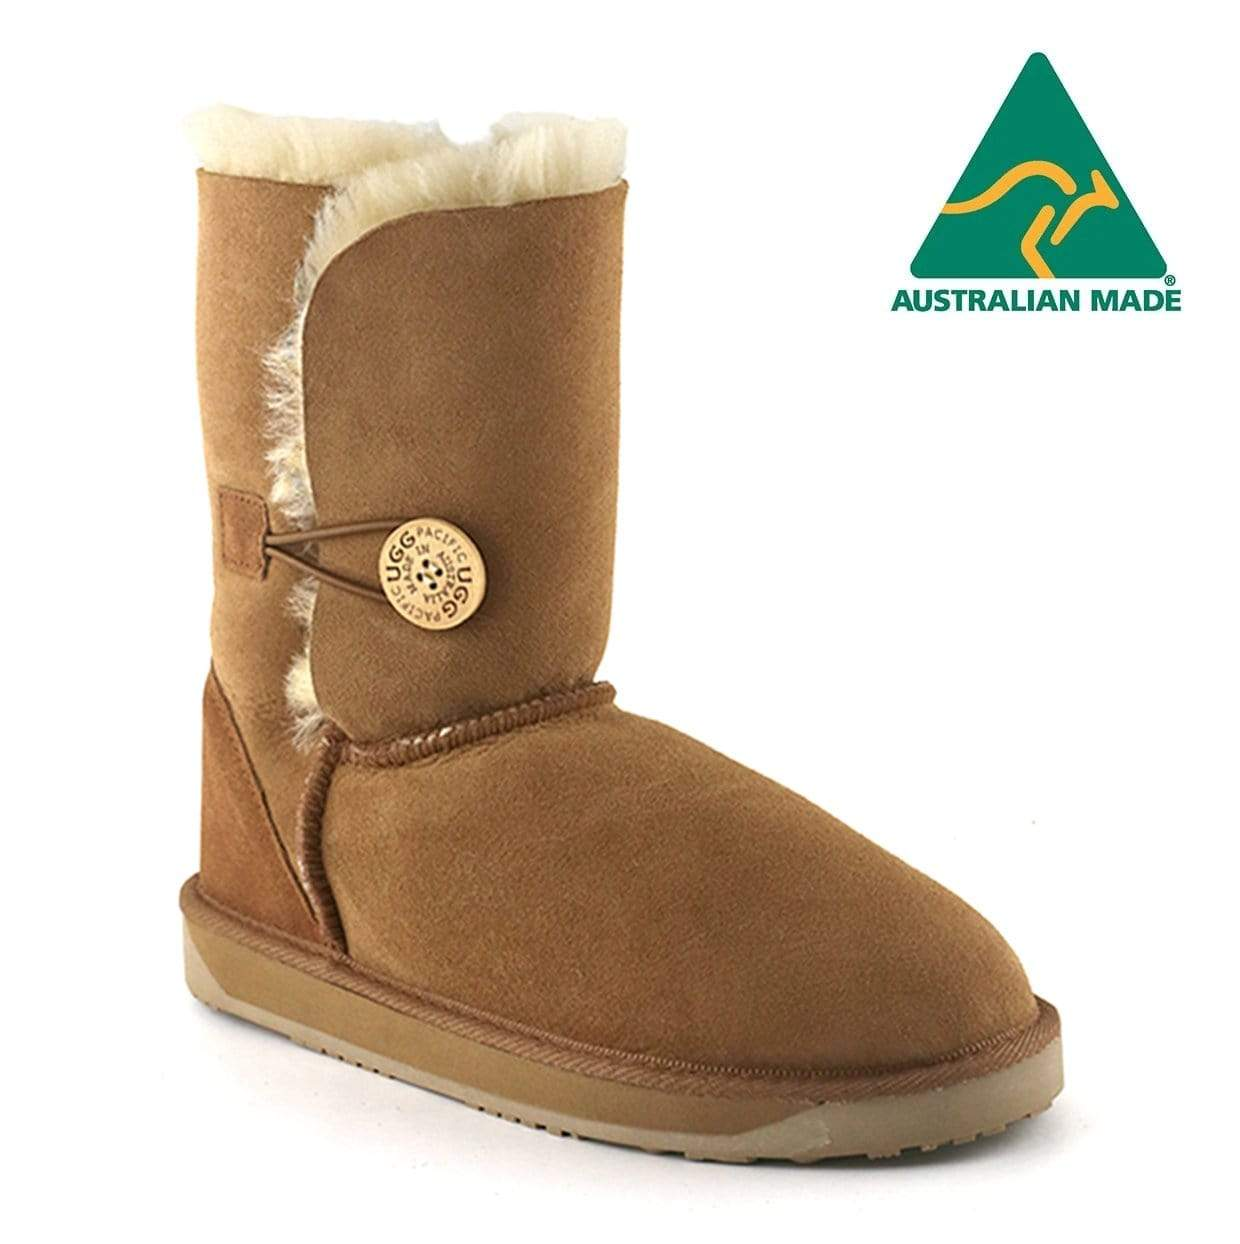 UGG Premium Short Button - Made in Australia